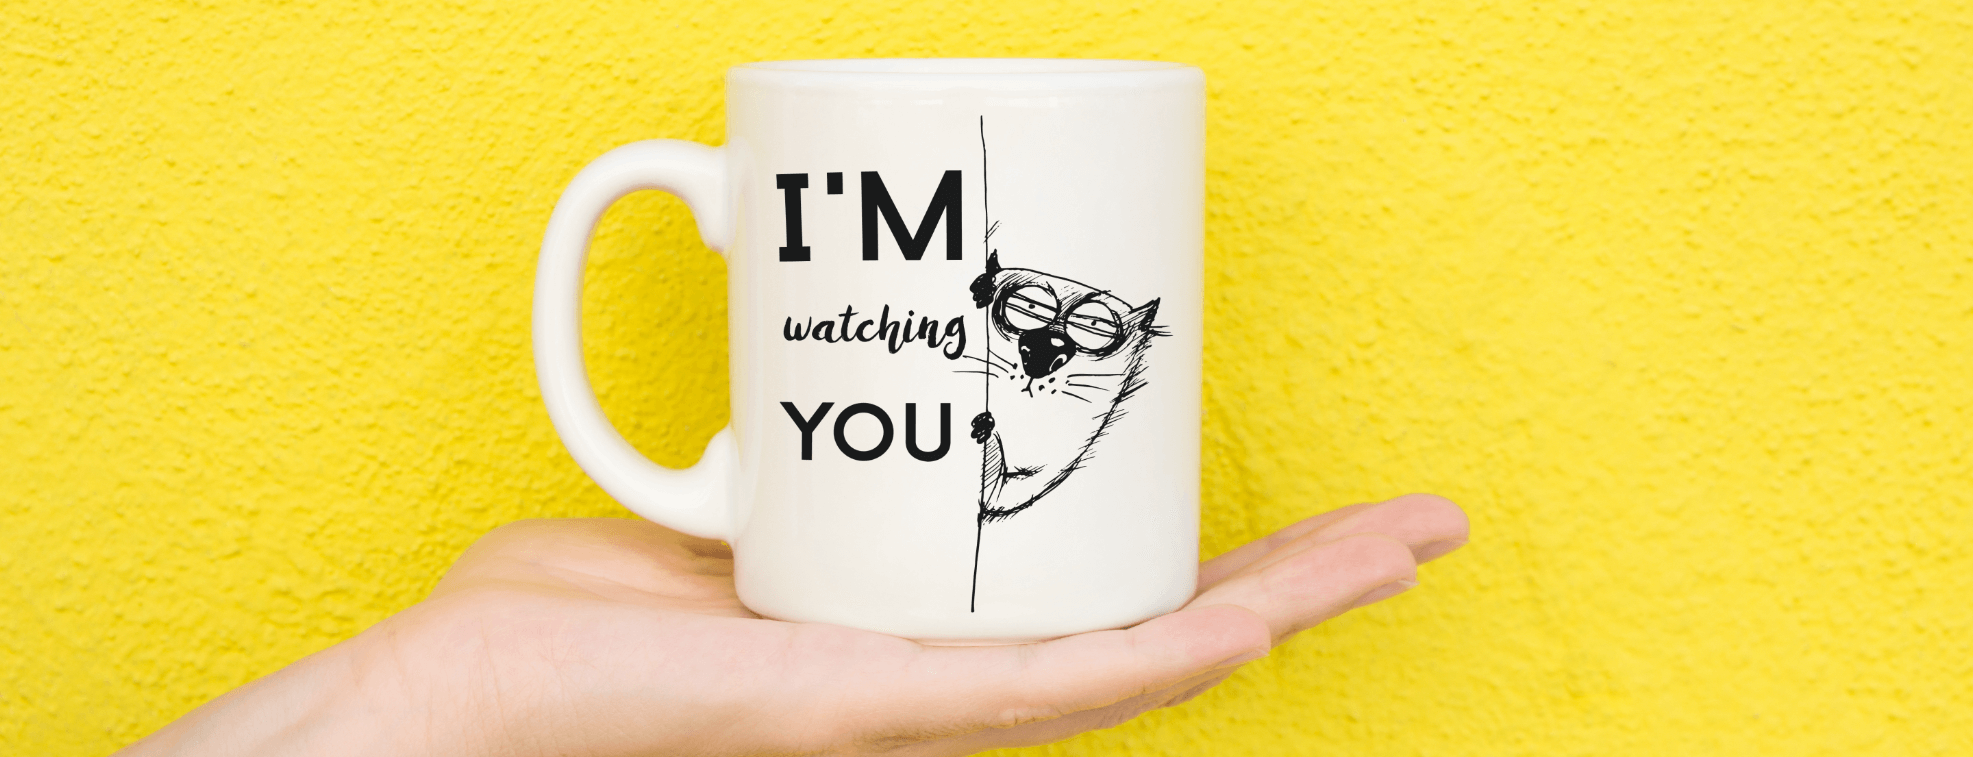 A funny mug on a yellow background with a cat watching you